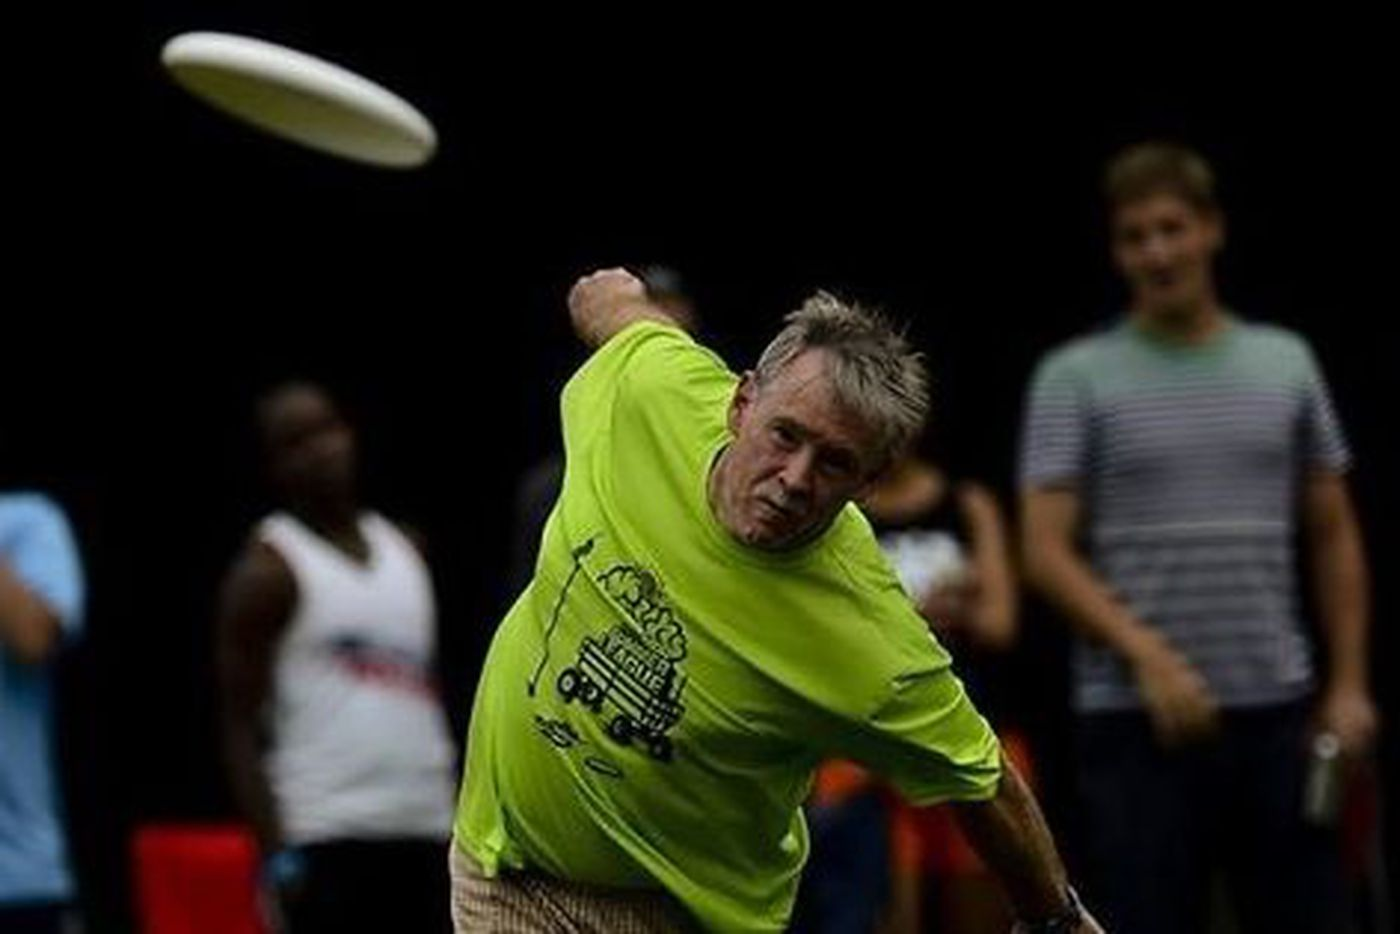 Donald \'Sauce\' Cain, 62, Ultimate Frisbee legend and record holder